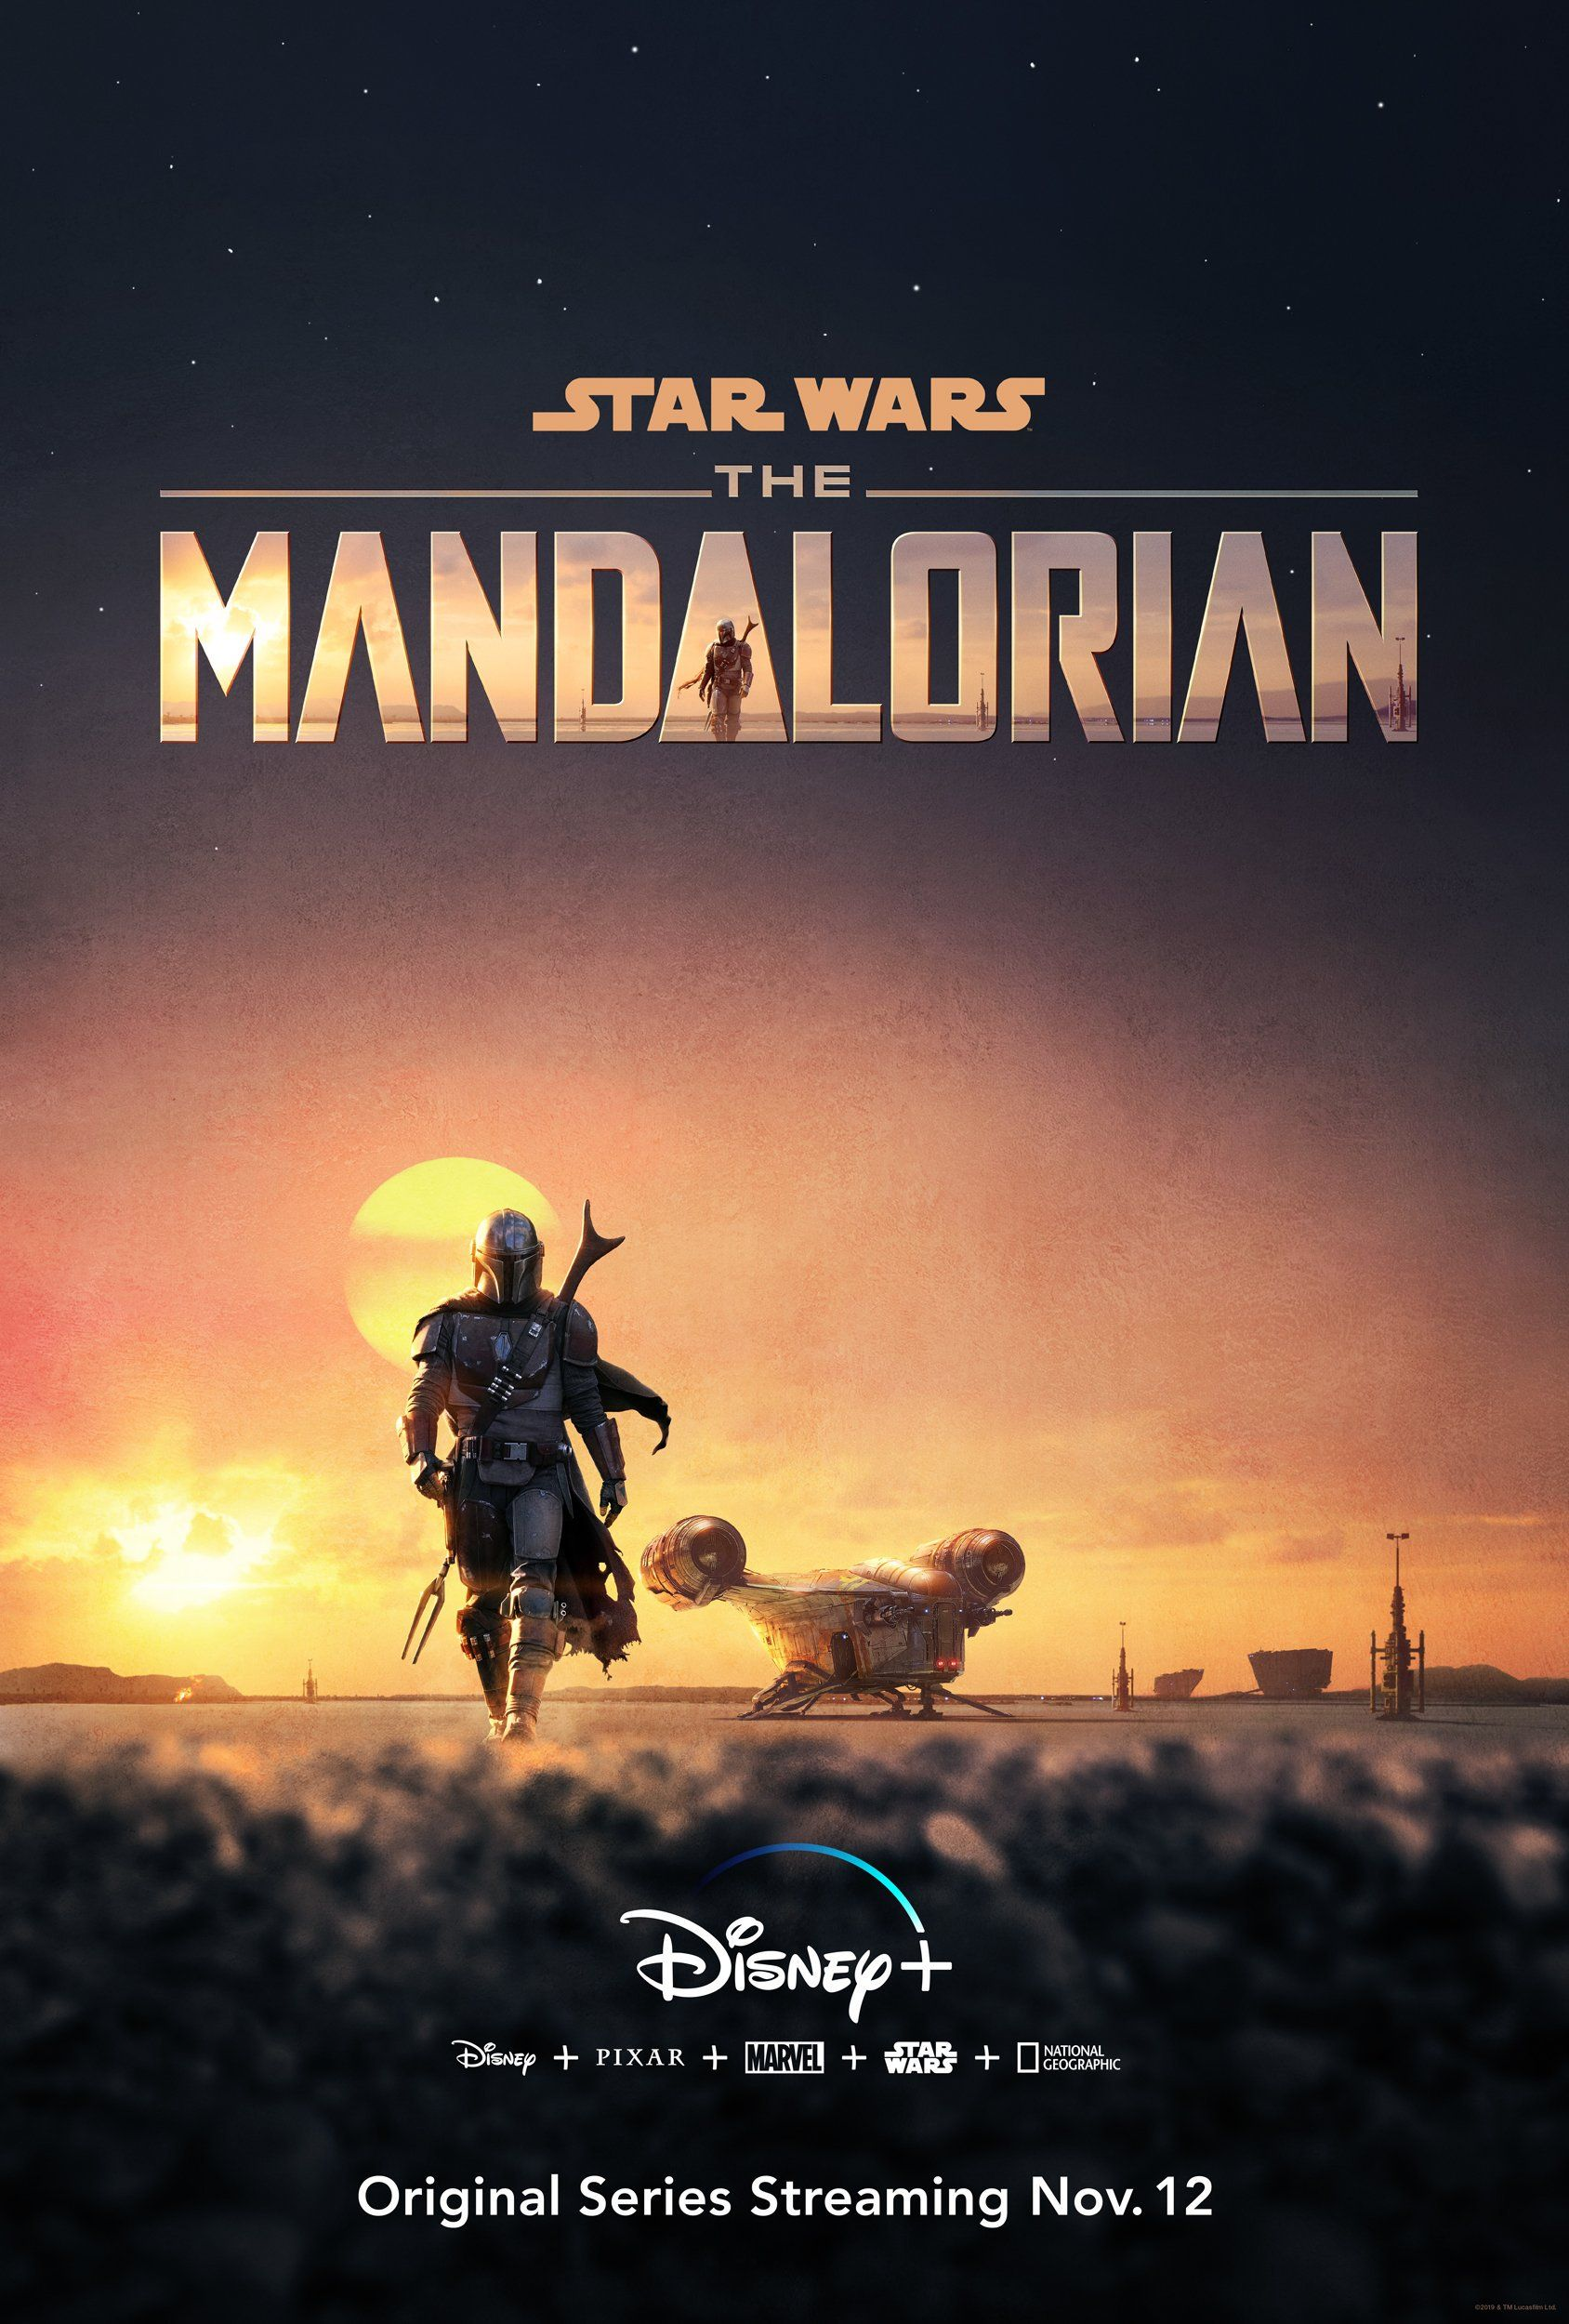 Star Wars unveils first-look trailer for live-action Mandalorian series